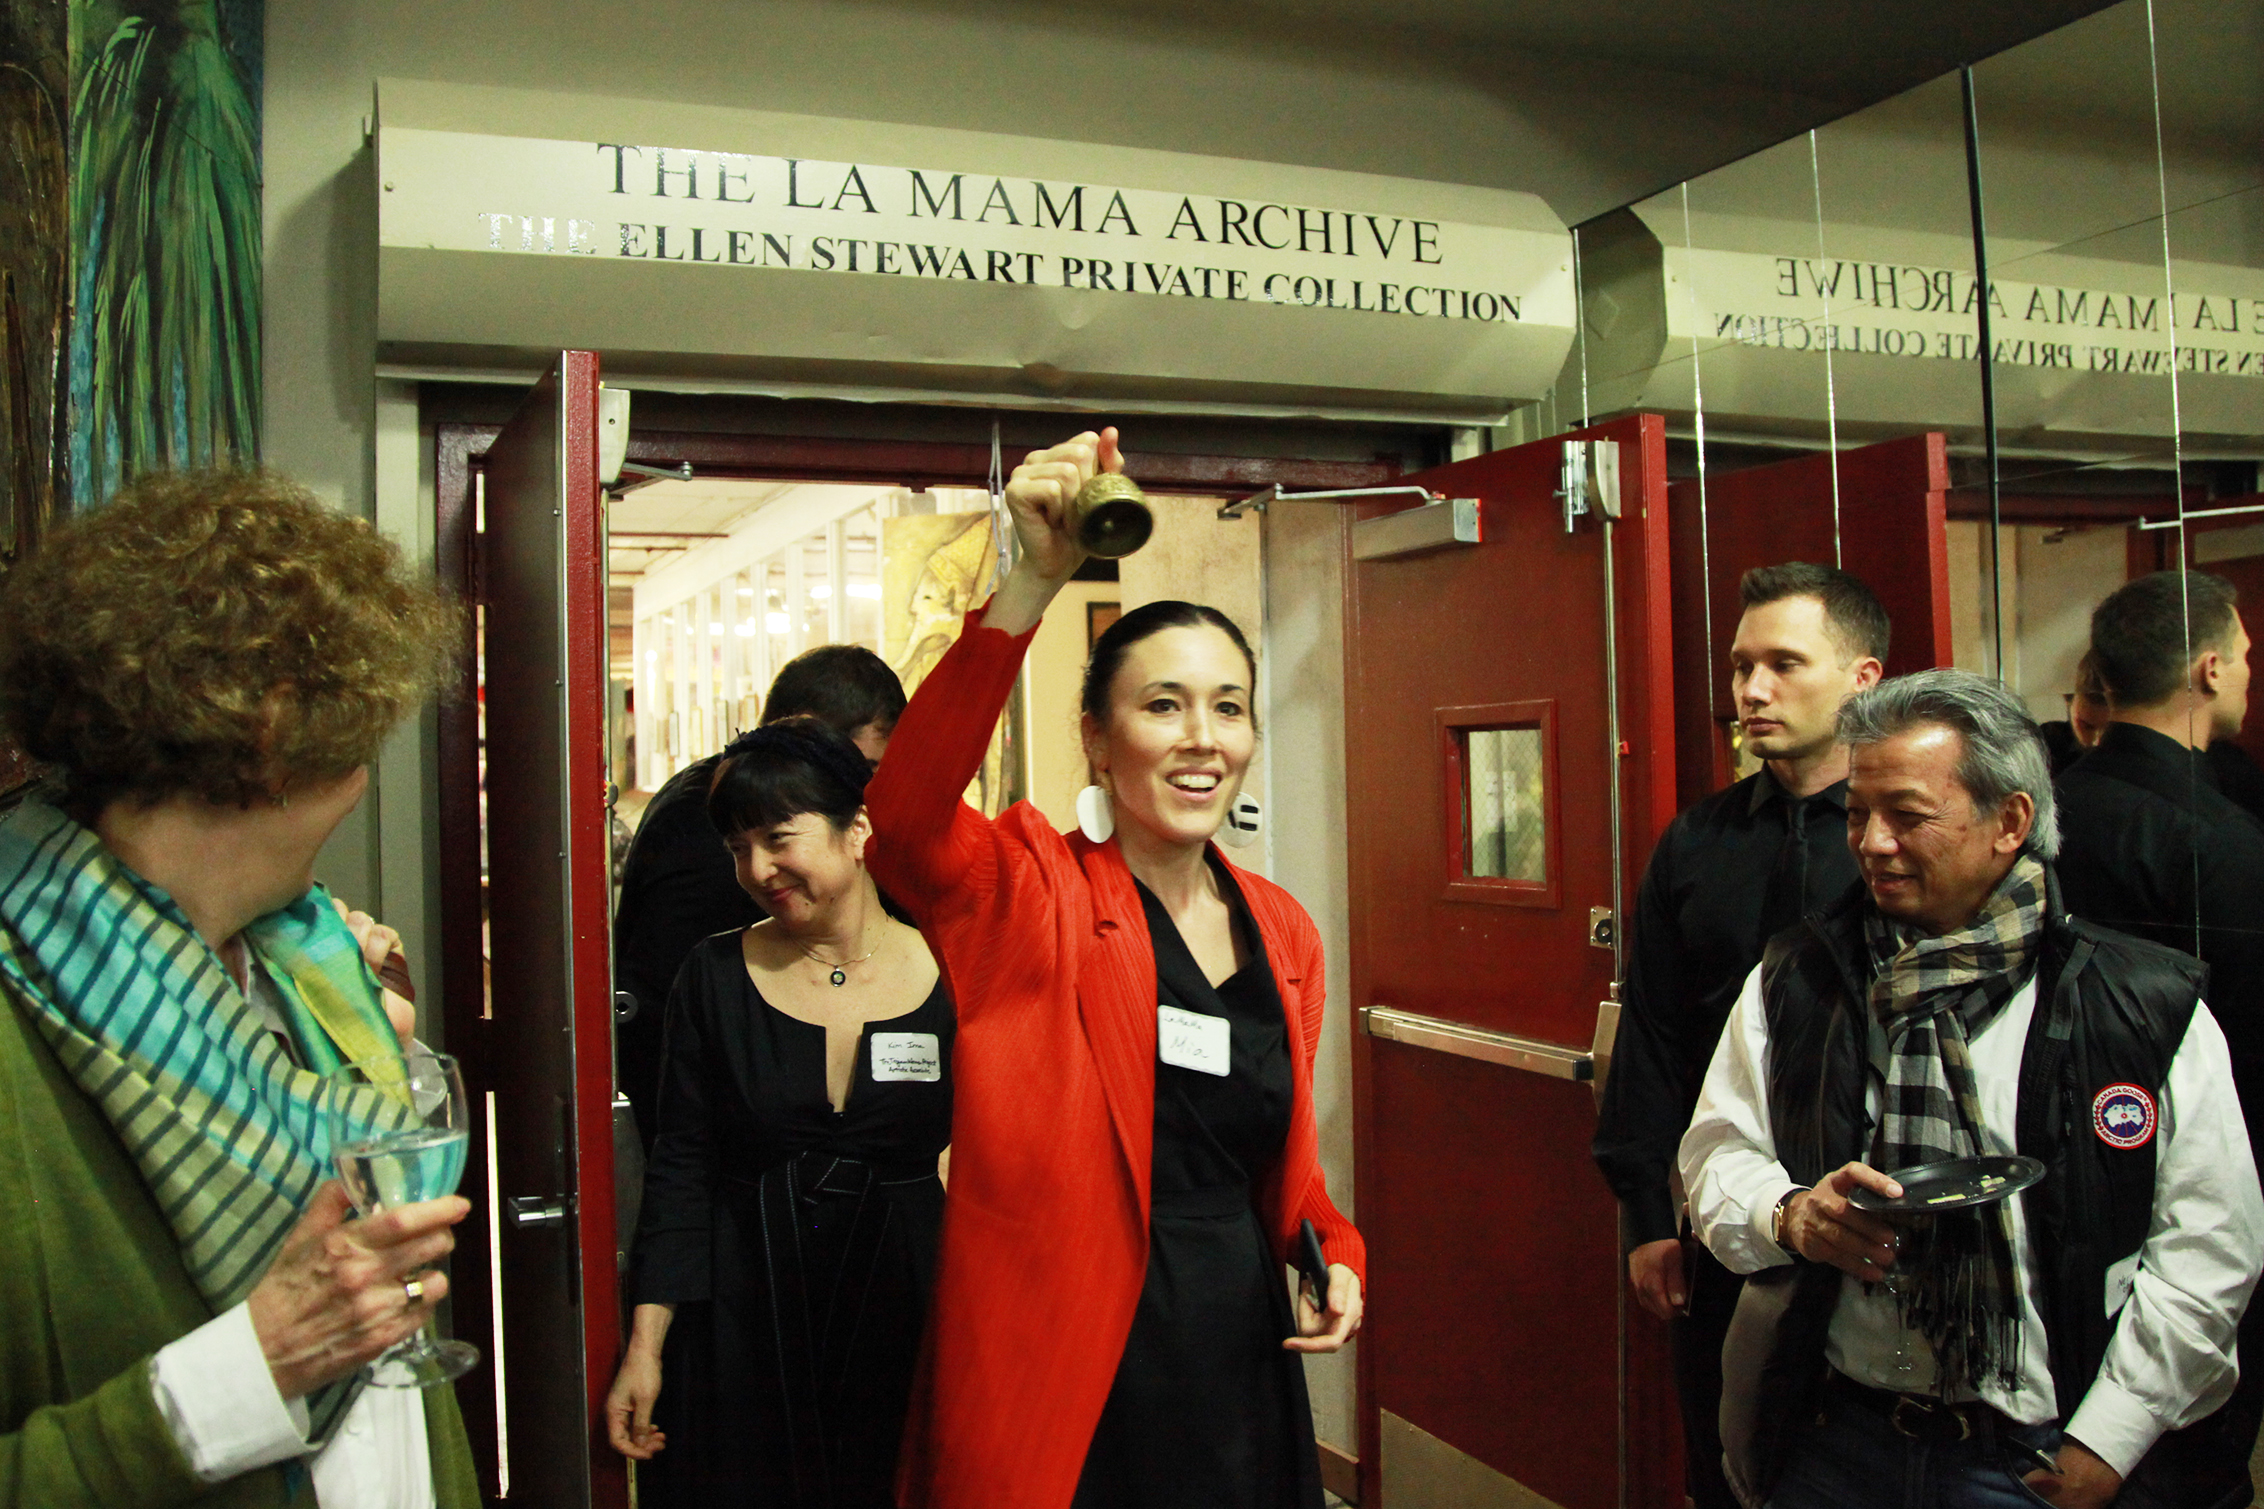 Artistic Director Mia Yoo ringing a bell at a Trojan Women Project event in a red jacket and black shirt